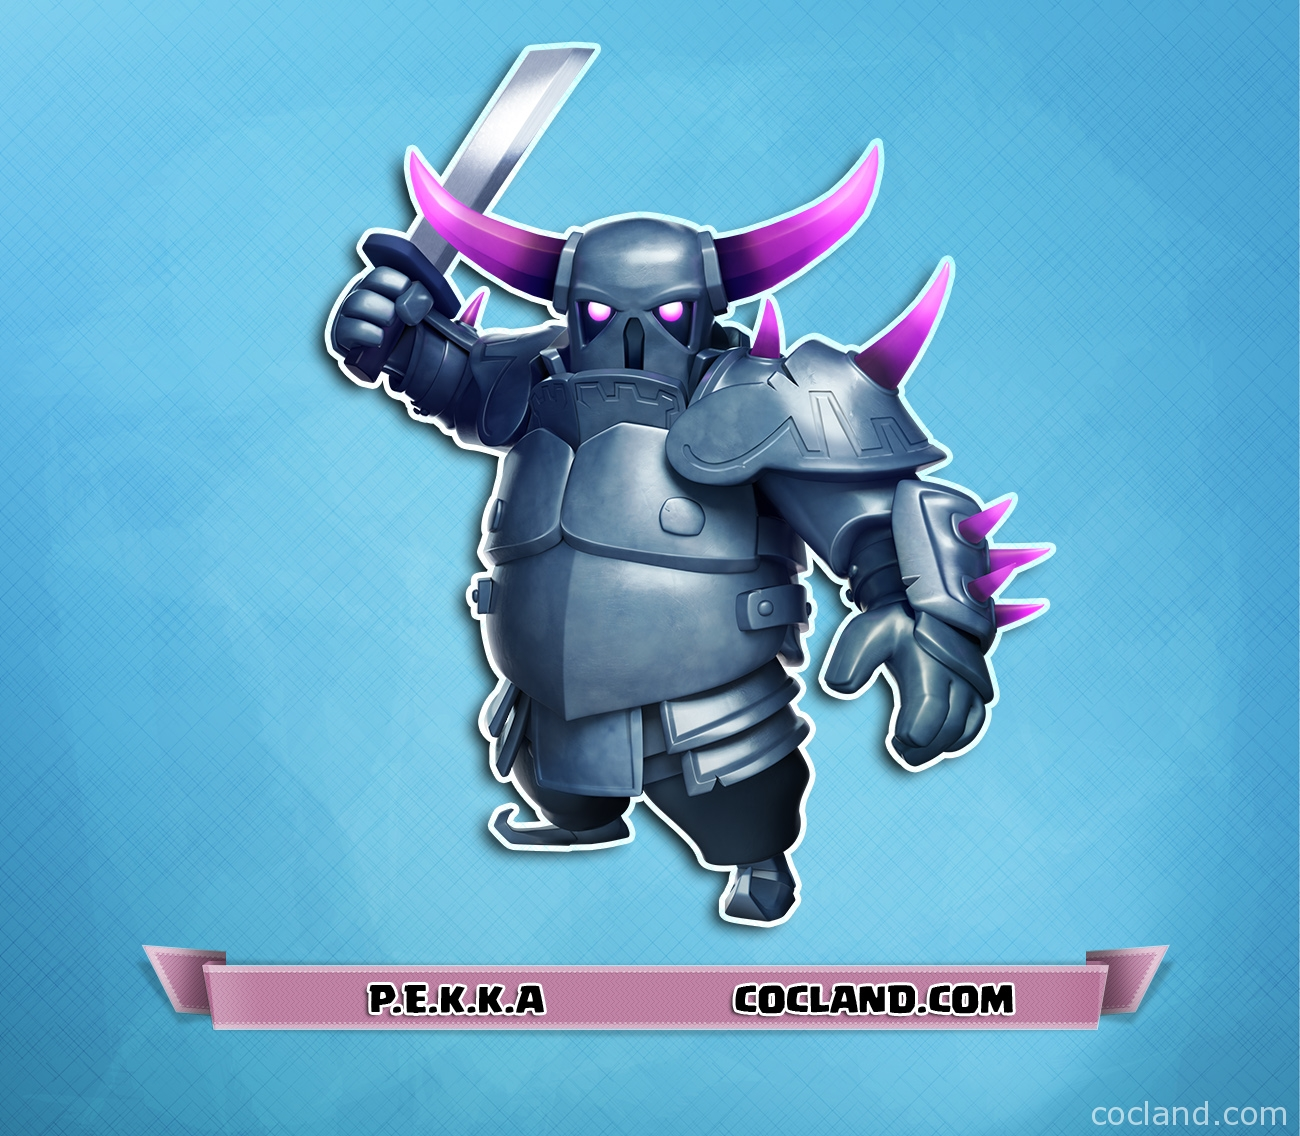 P.E.K.K.A Clash of Clans